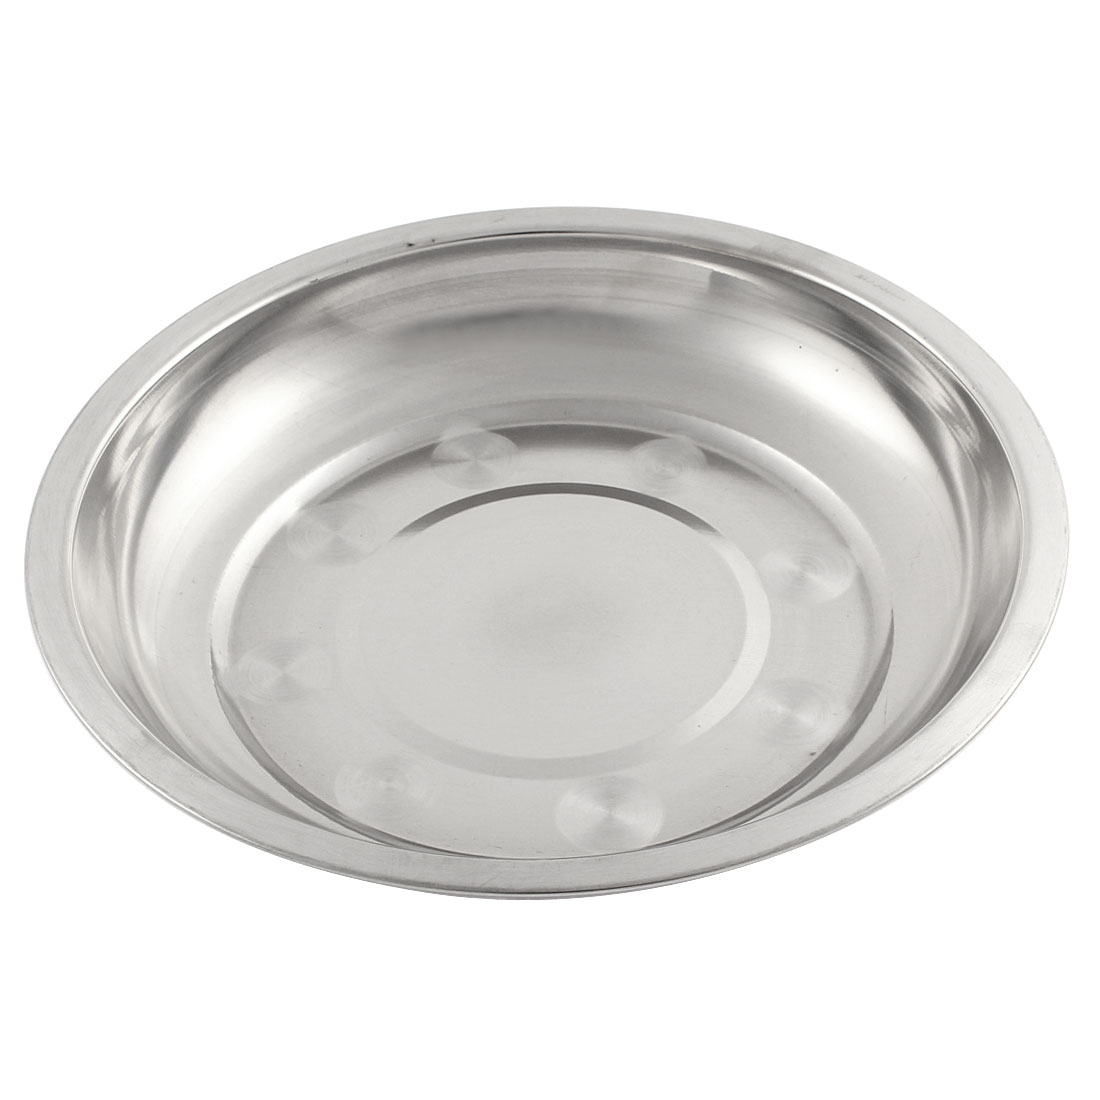 19cm x 3cm Round Silver Tone Stainless Steel Kitchen Dish Plate Food Holder